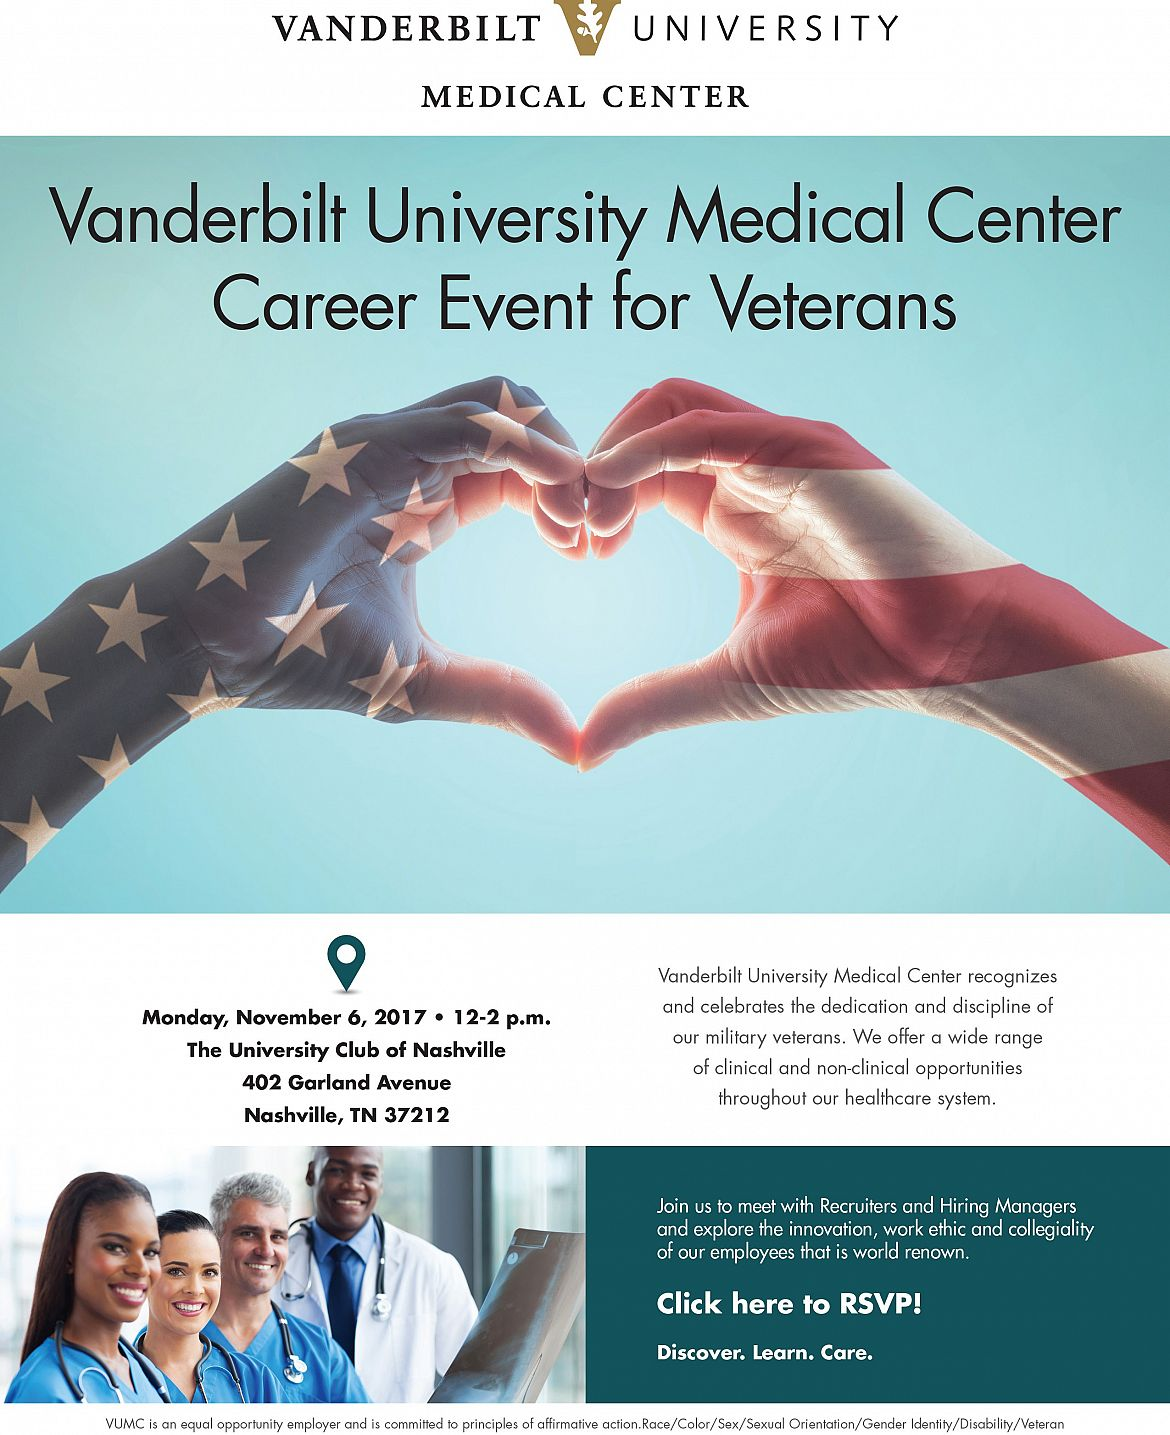 Vanderbilt University Medical Center Career Event for Veterans